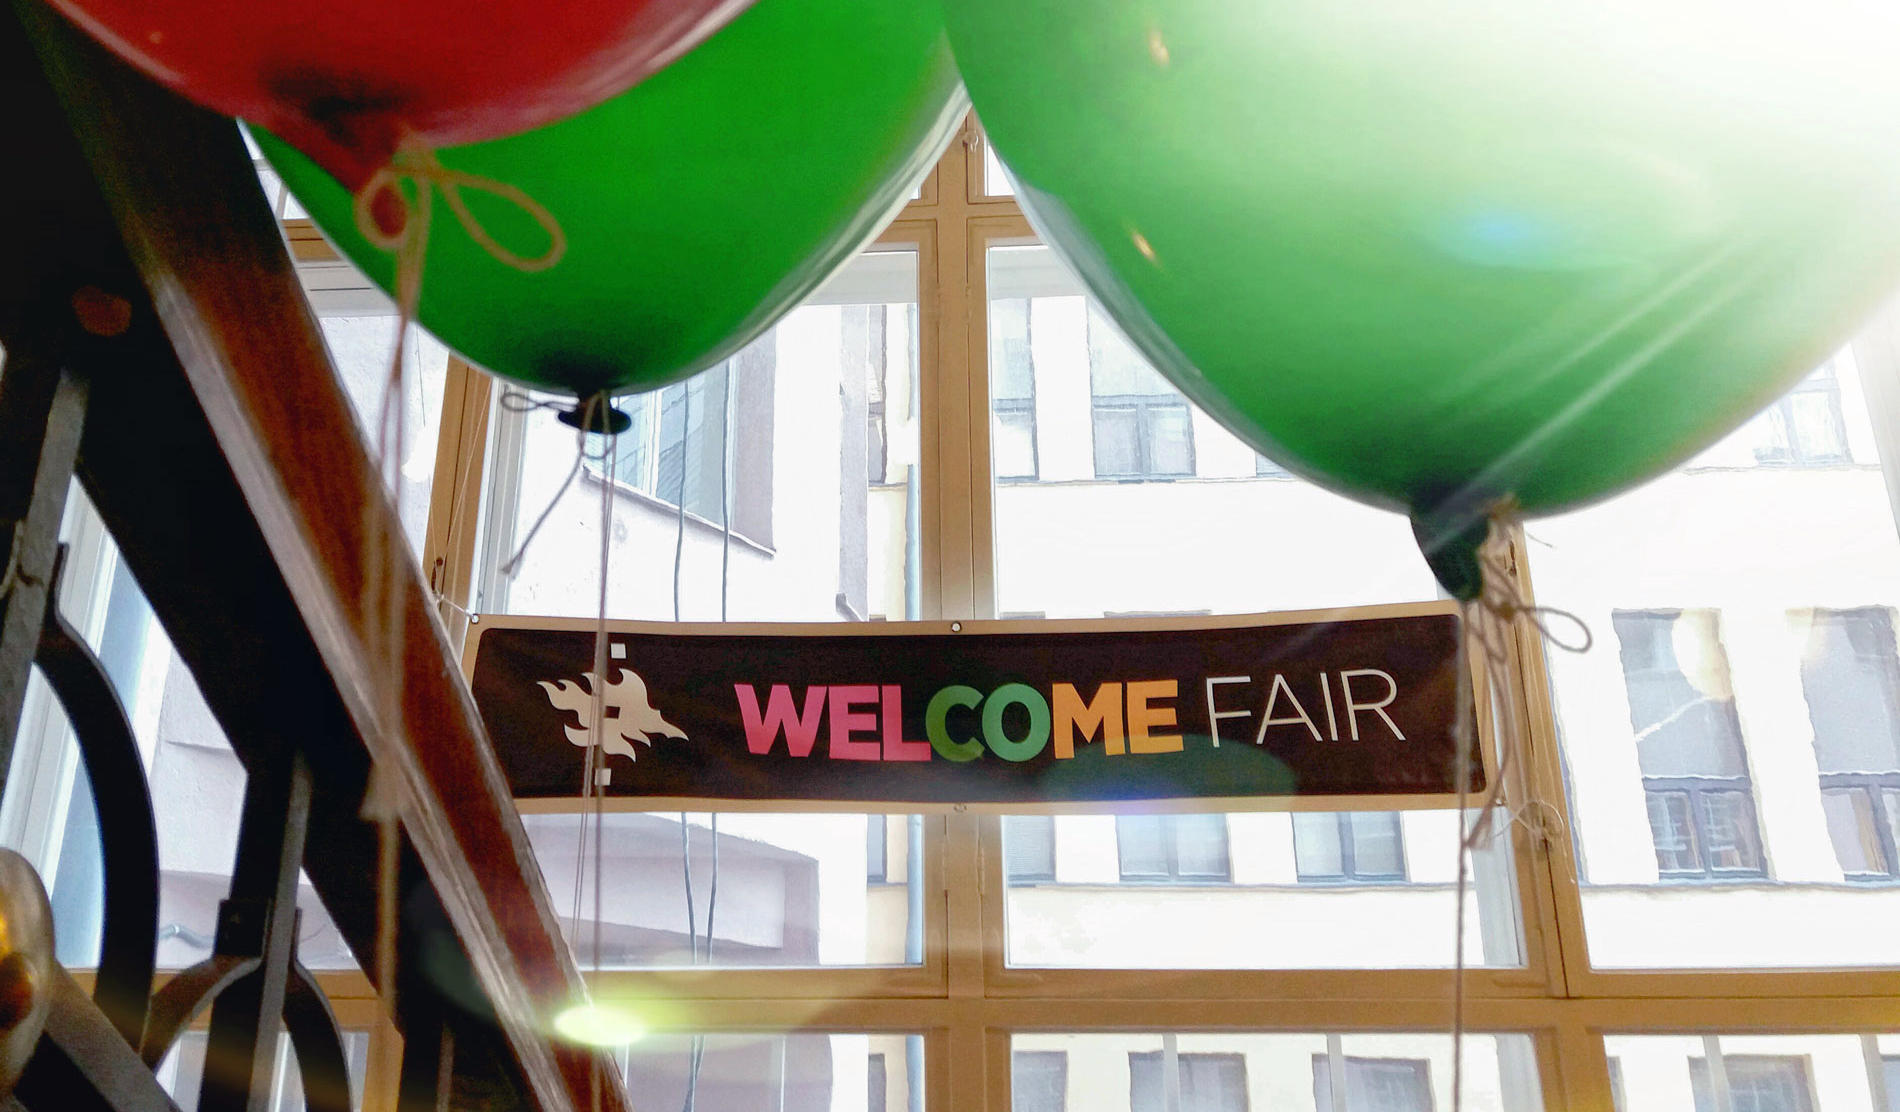 At the University of Helsinki, you can take care of admin and meet your peers at the Welcome Fair.